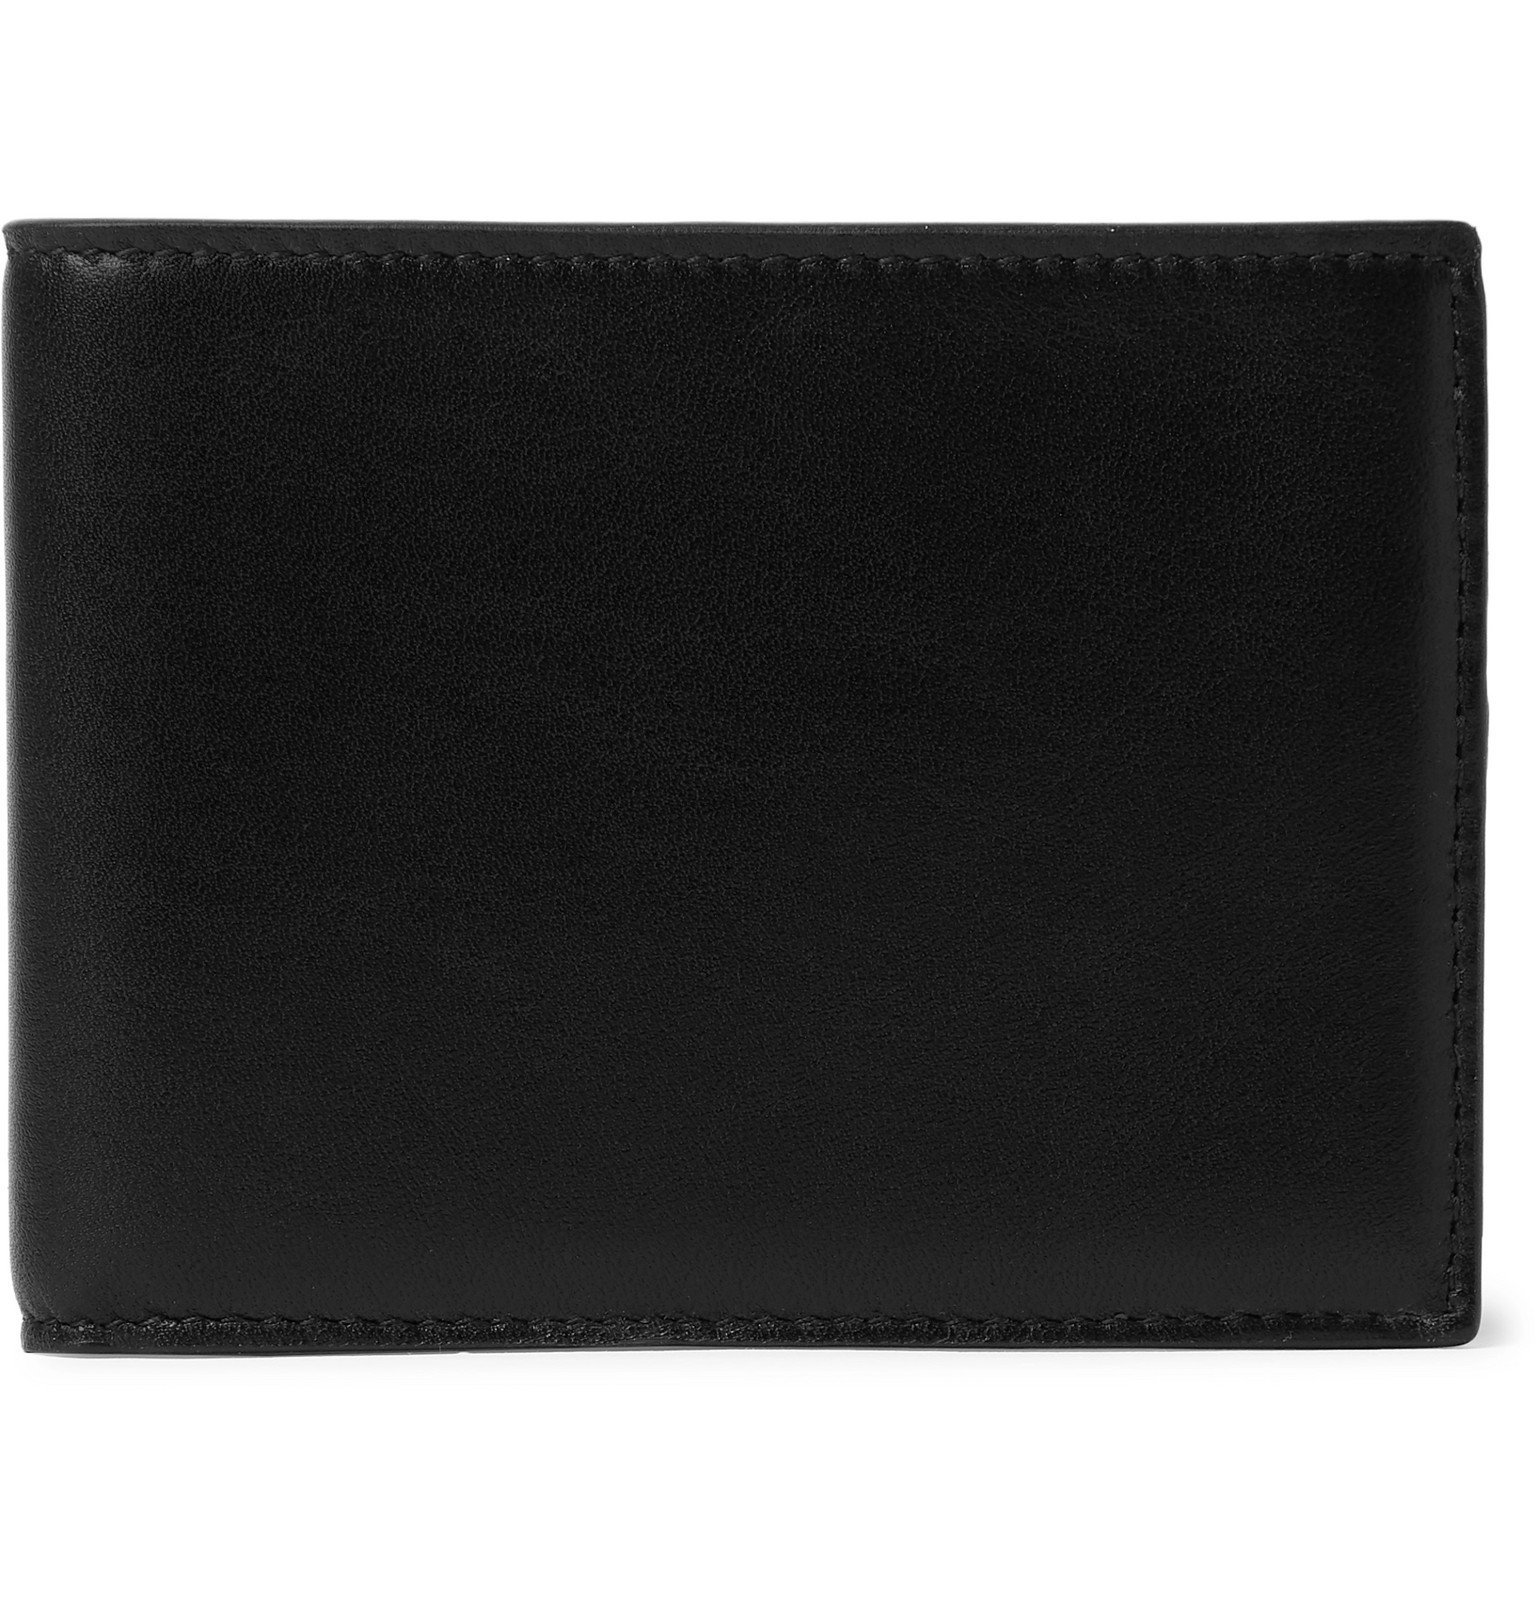 Common Projects - Leather Billfold Wallet - Black